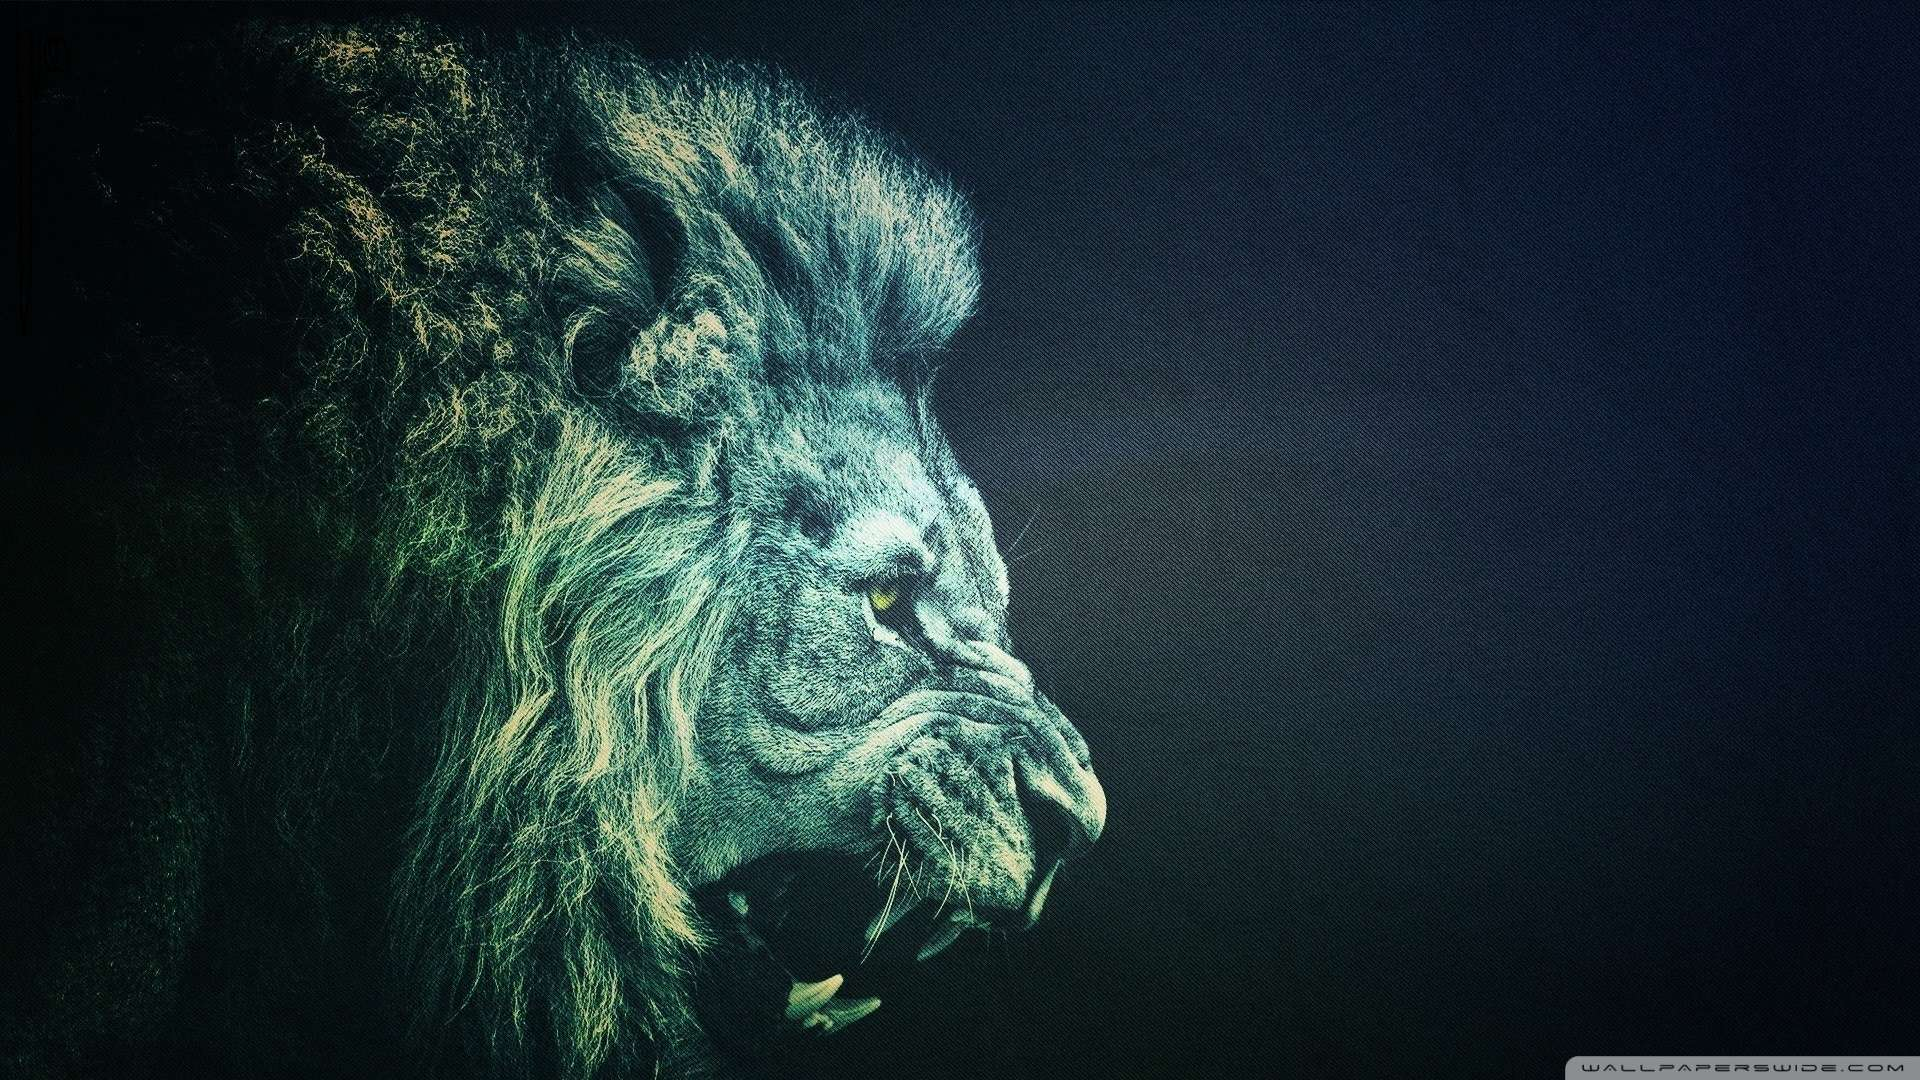 Wallpaper Lion 14 Wallpaper 1080p HD Upload at February 7 2014 by 1920x1080